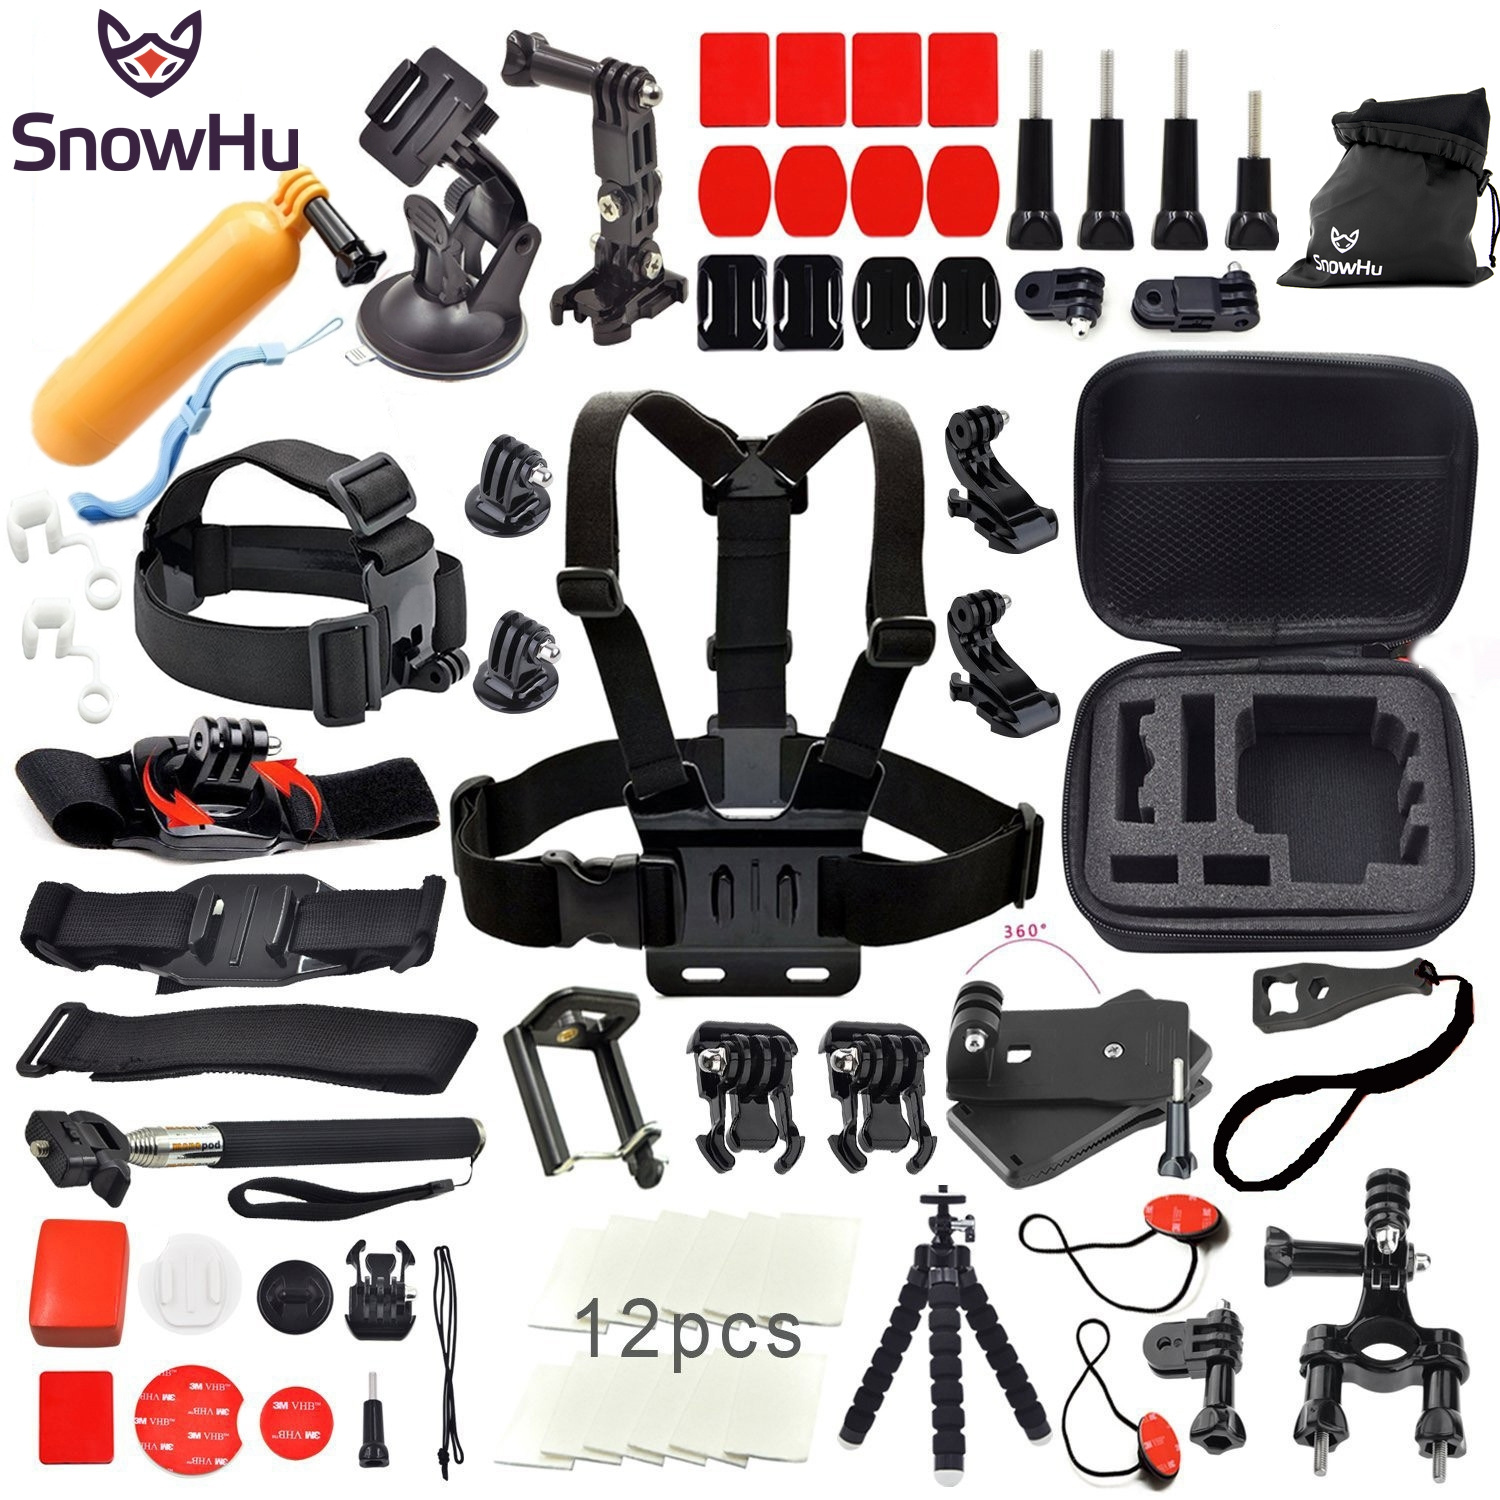 SnowHu For Gopro hero 6 5 4 Accessories Set Helmet Harness Chest  Strap Monopod Go pro Hero 6 5 4 3 xiaomi yi 2 4K SJCAM M10 Y12